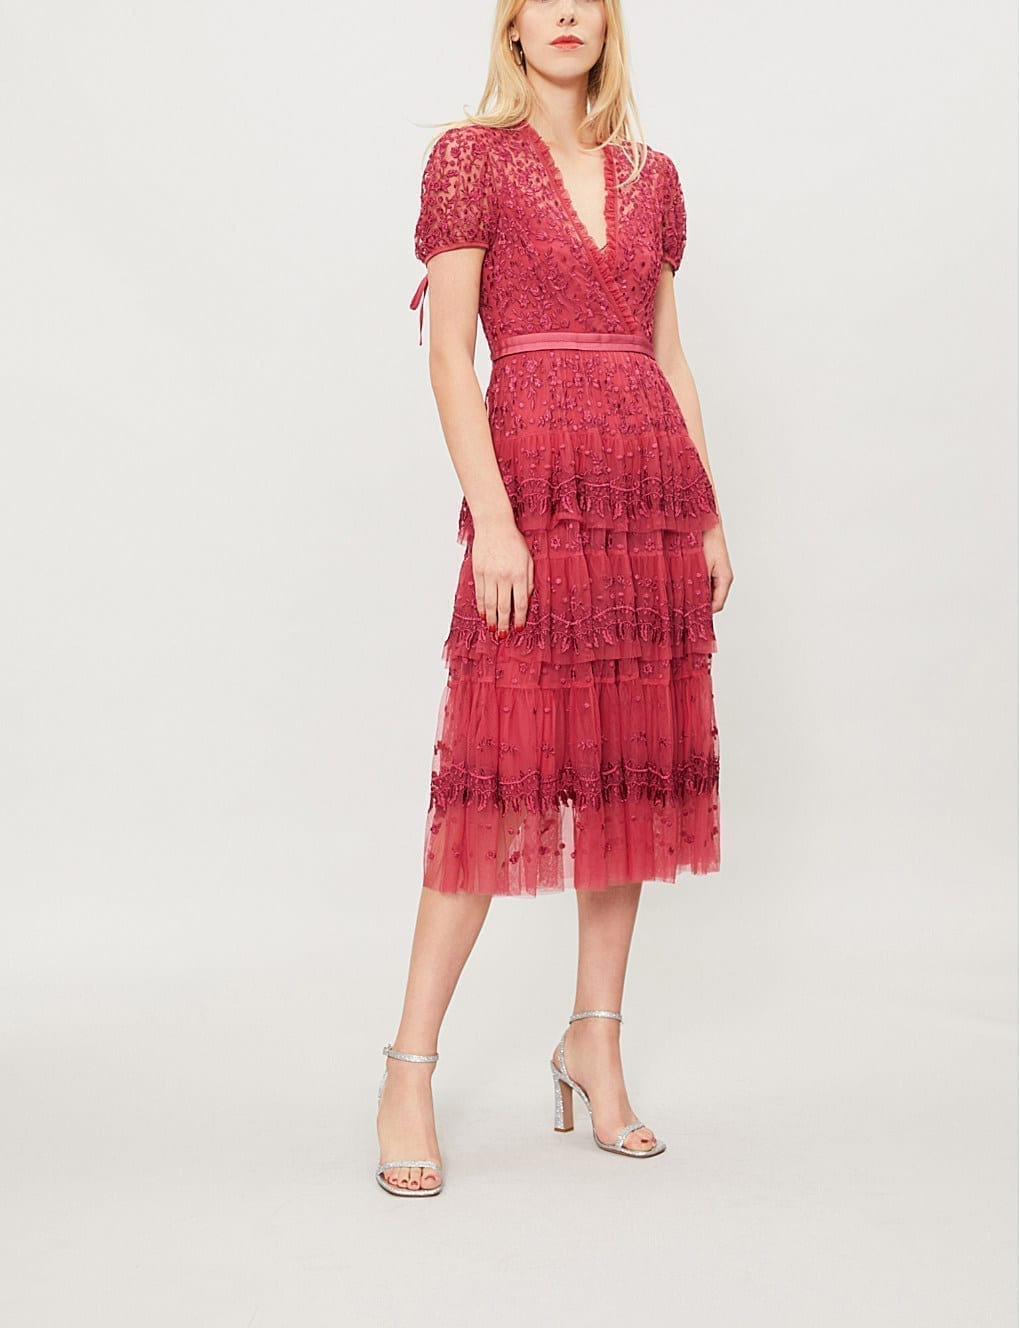 NEEDLE AND THREAD Heather Embroidered Tulle Red Dress